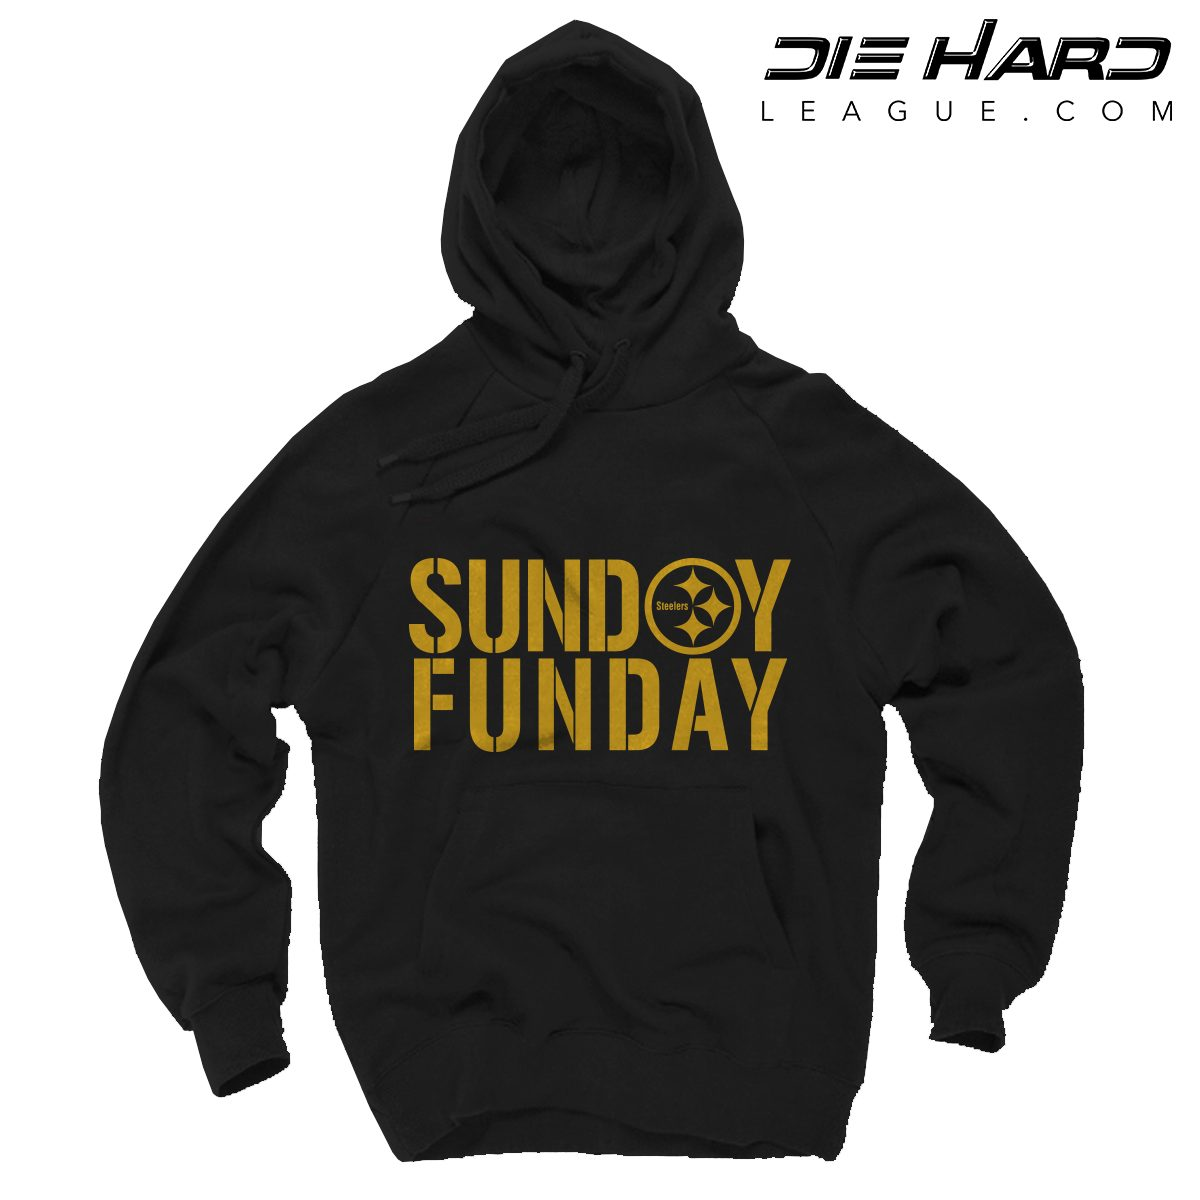 timeless design 17dbe c2d66 Steelers Sweater Pittsburgh - Sunday Funday Black Hoodie